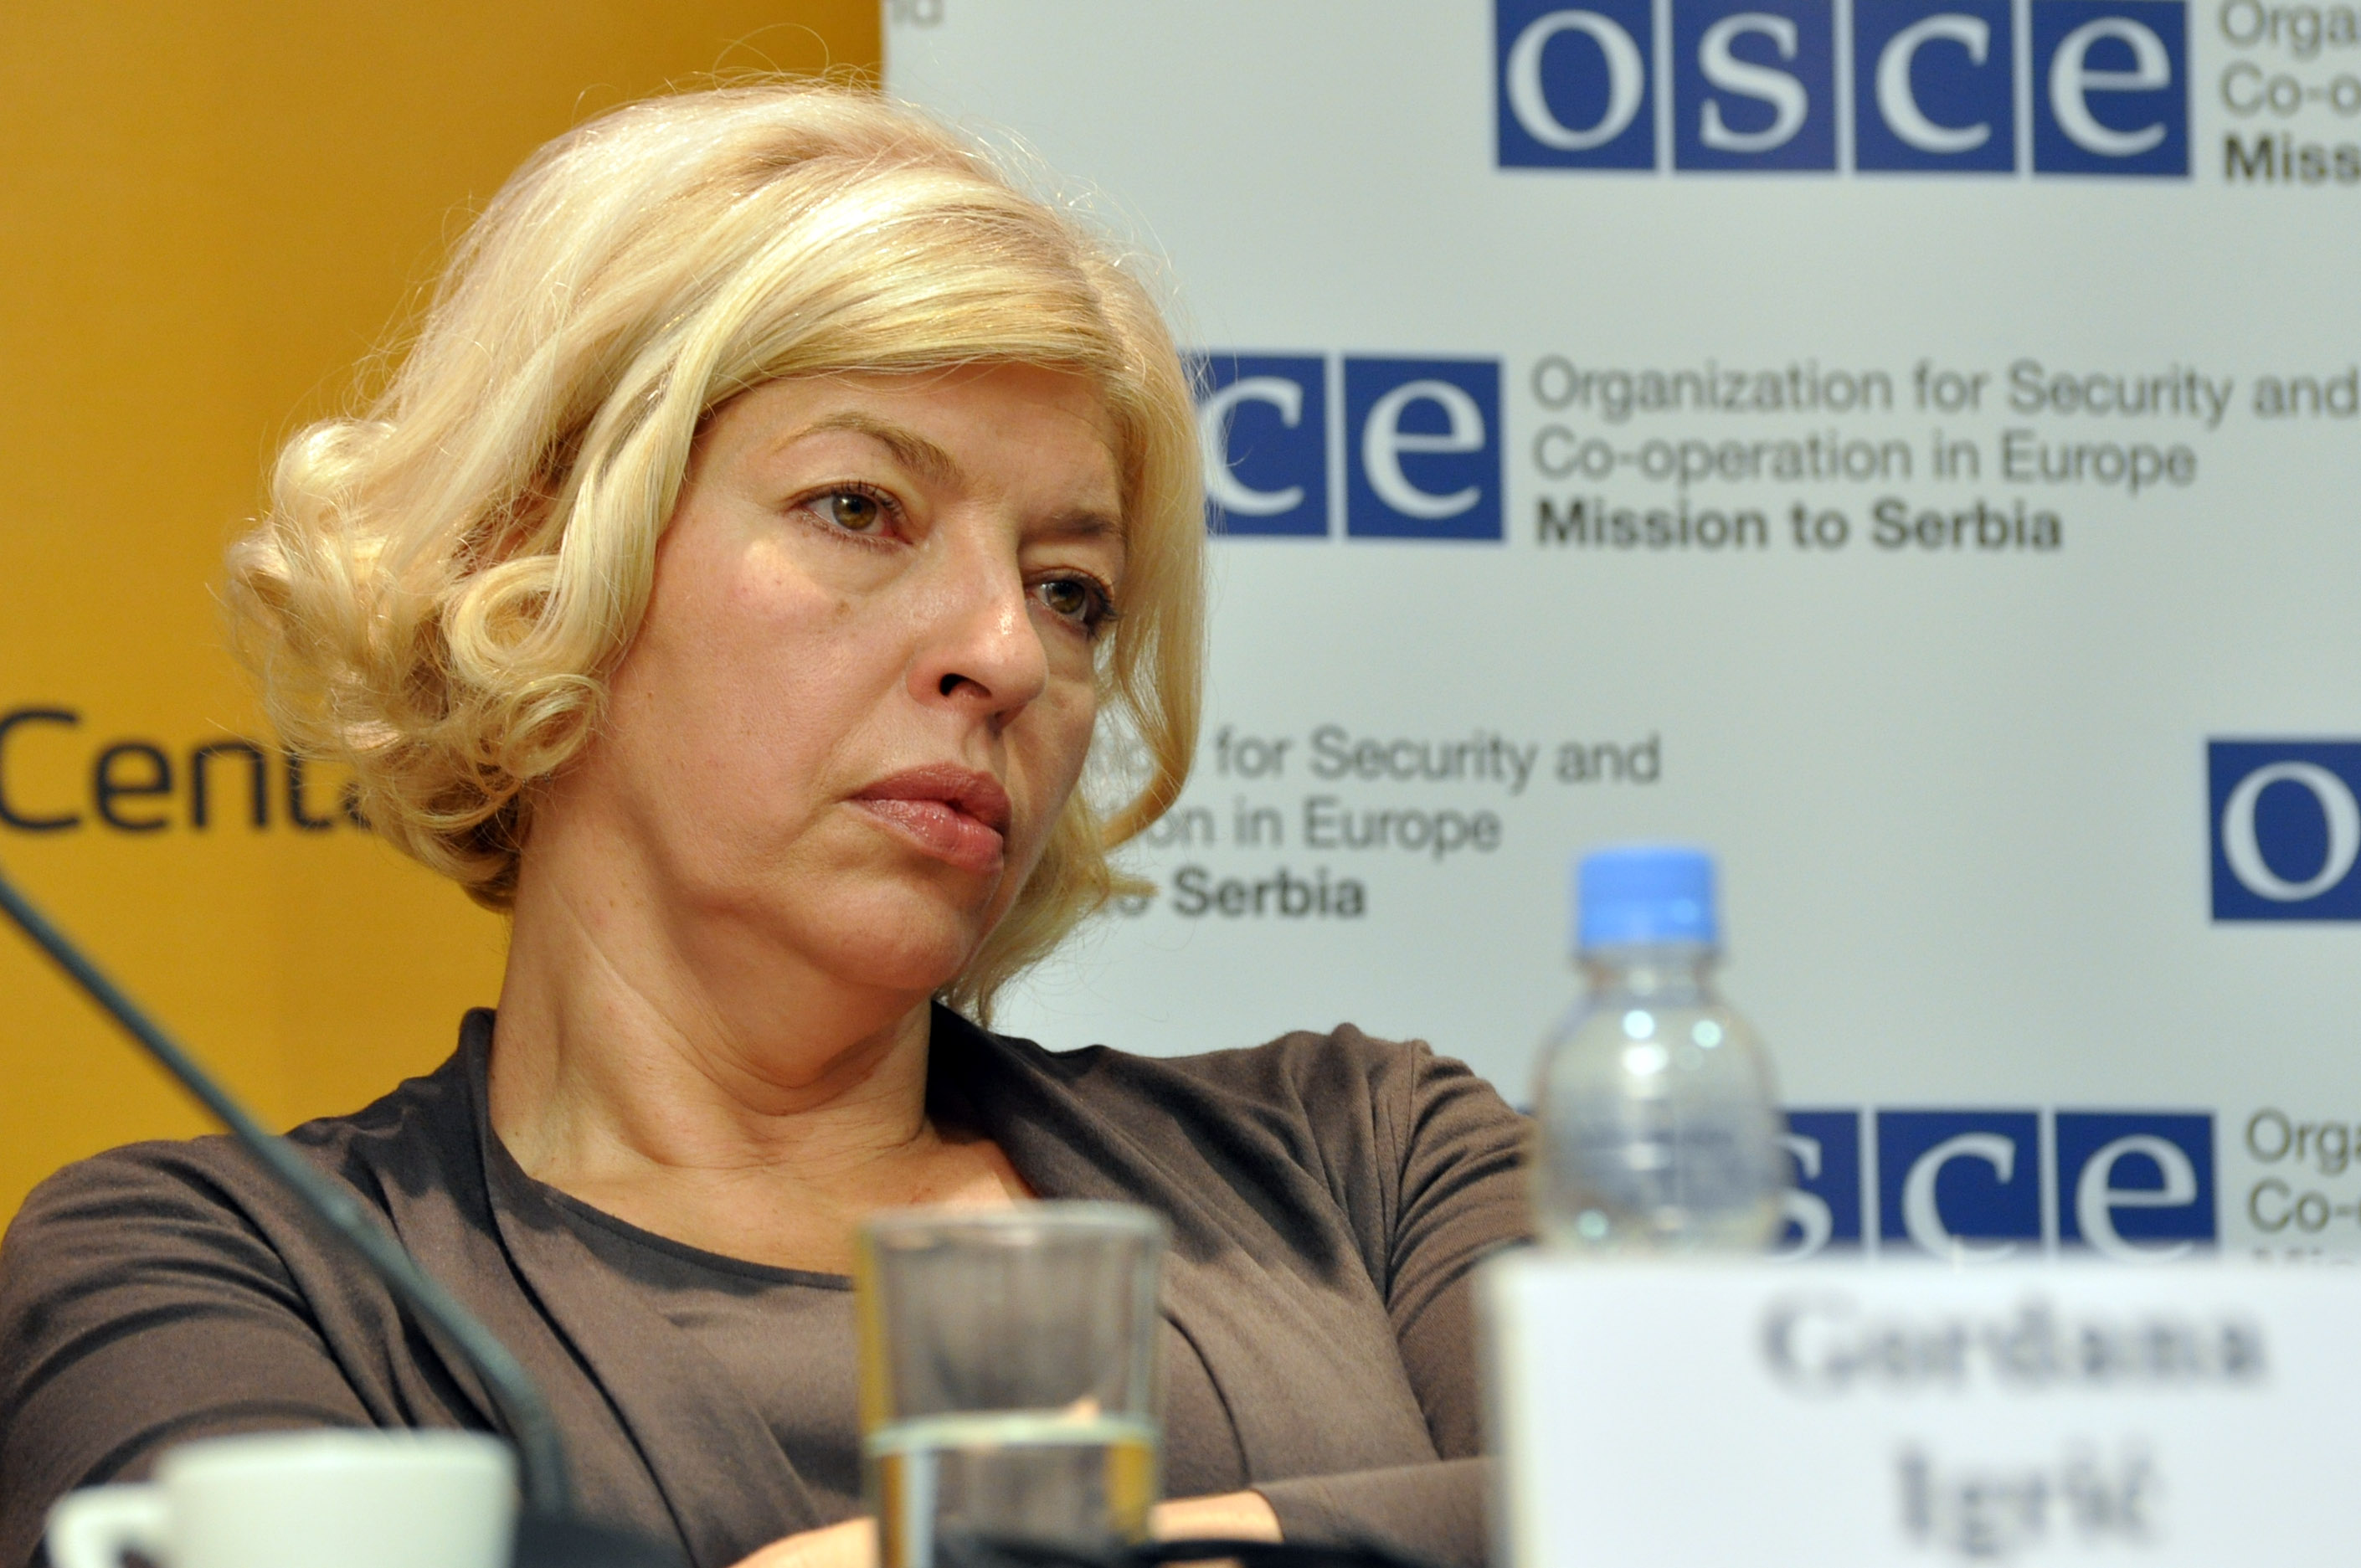 """BIRN Regional Network Director Gordana Igrić at a panel titled """"Media in Serbia at a Crossroads"""", July 2011. Photo courtesy of Media Center Belgrade, used with permission."""